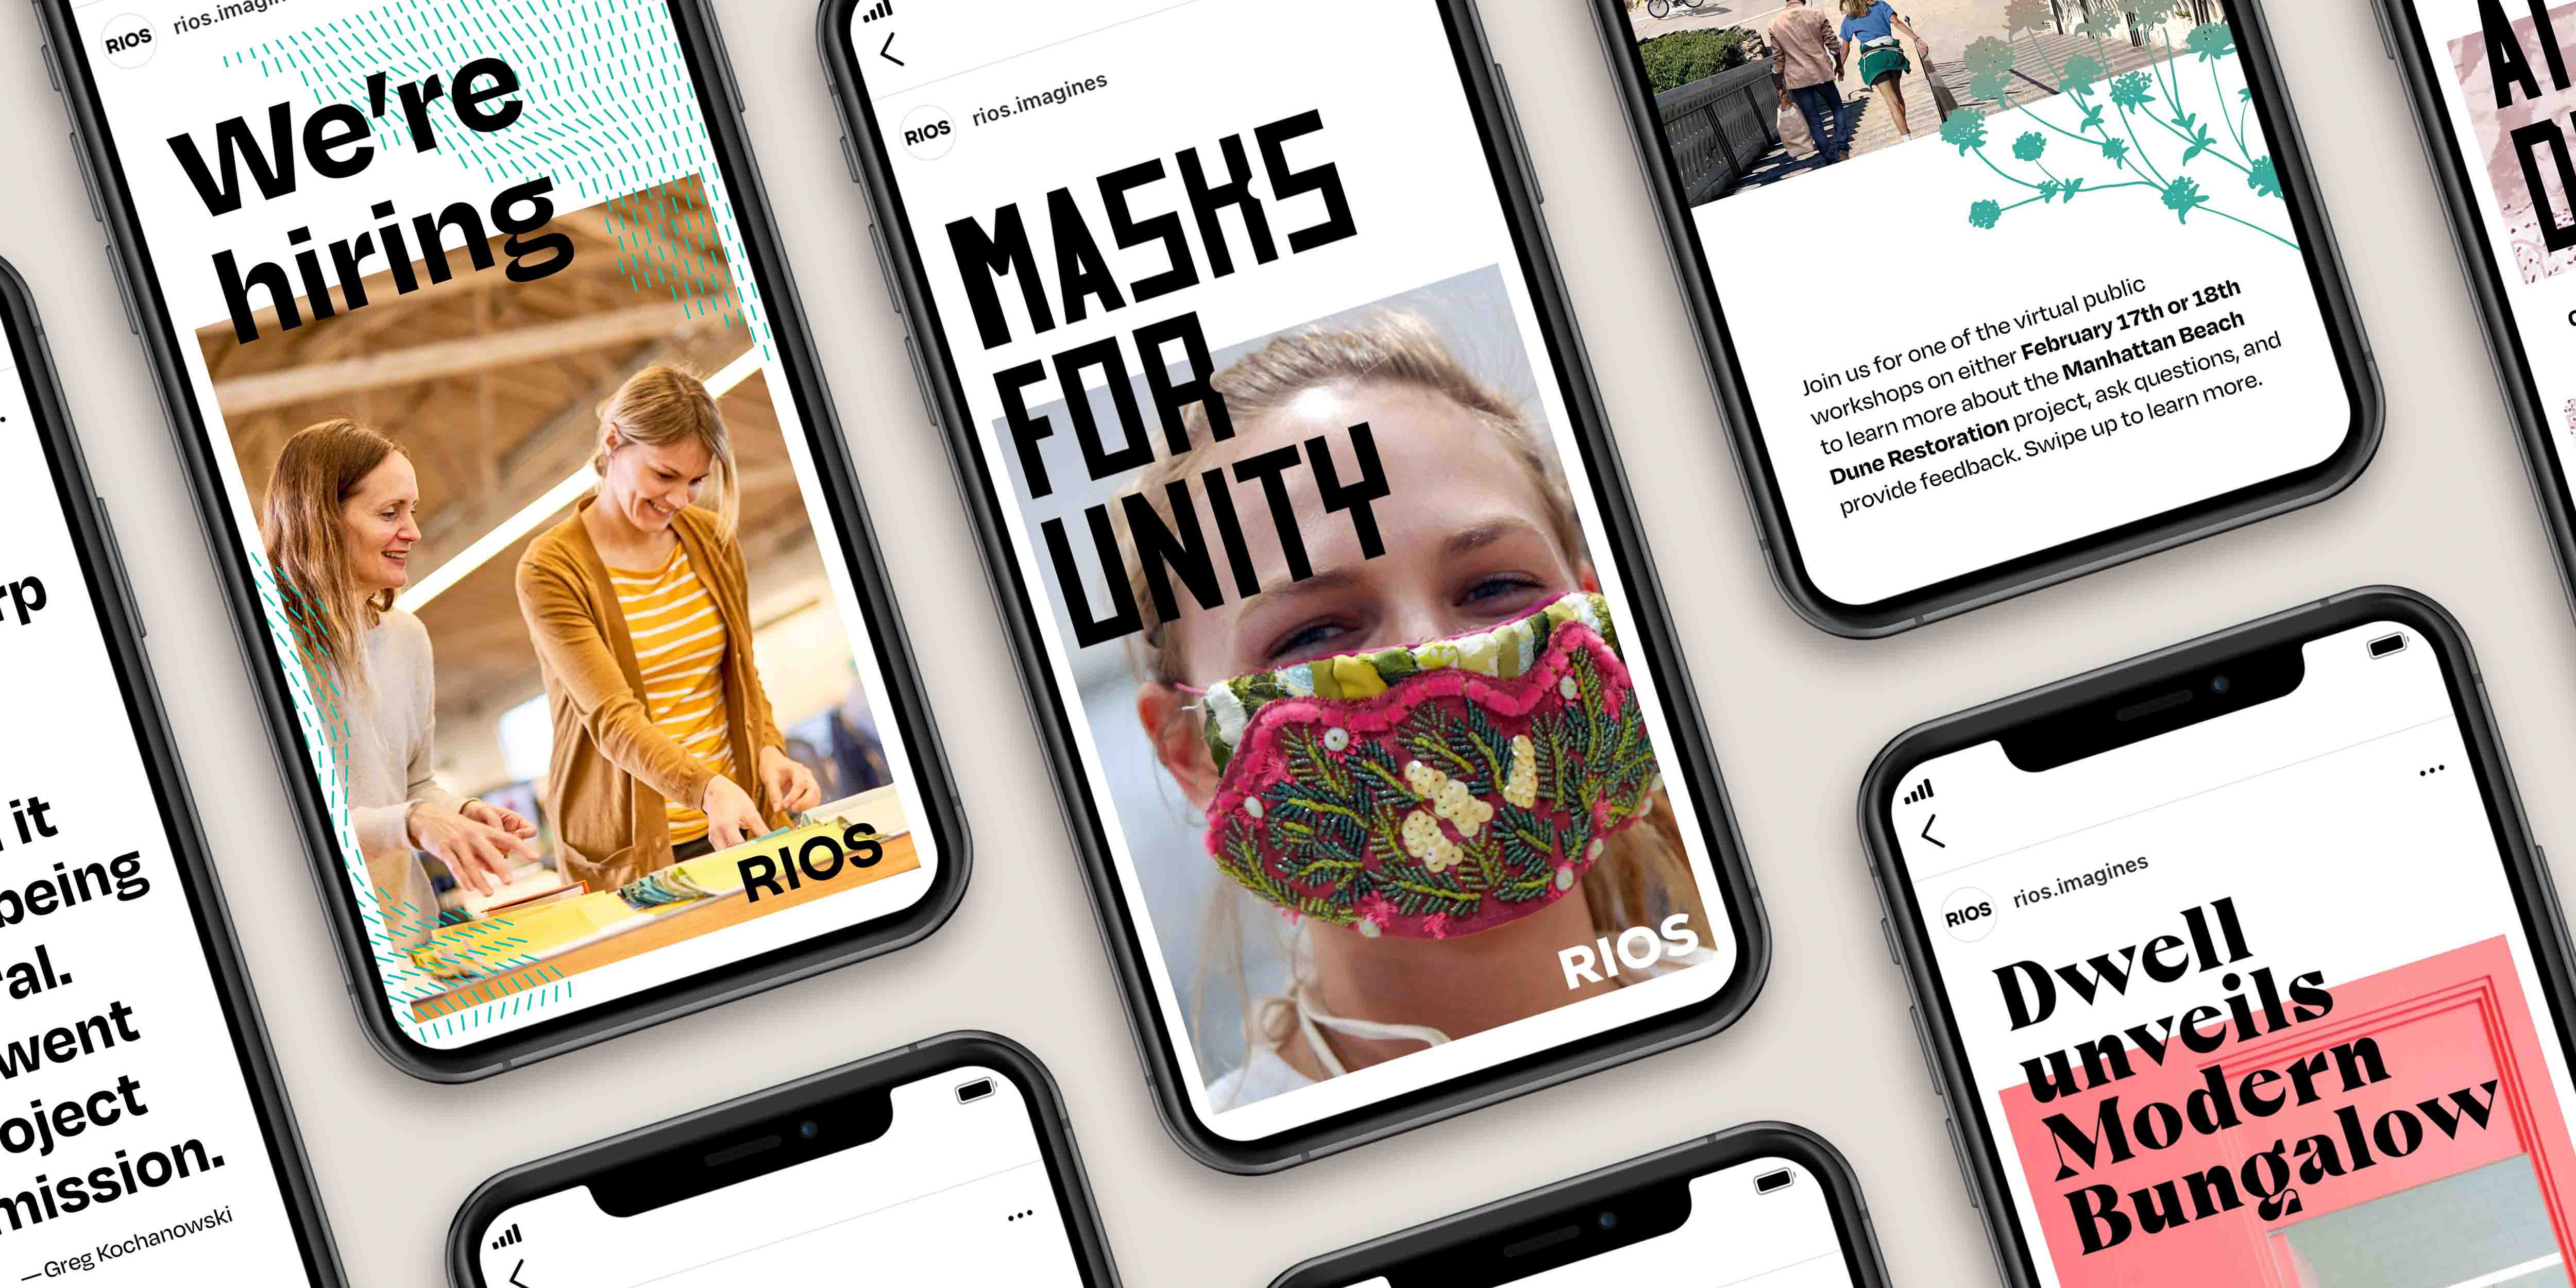 A mockup of Instagram Stories with the RIOS brand identity